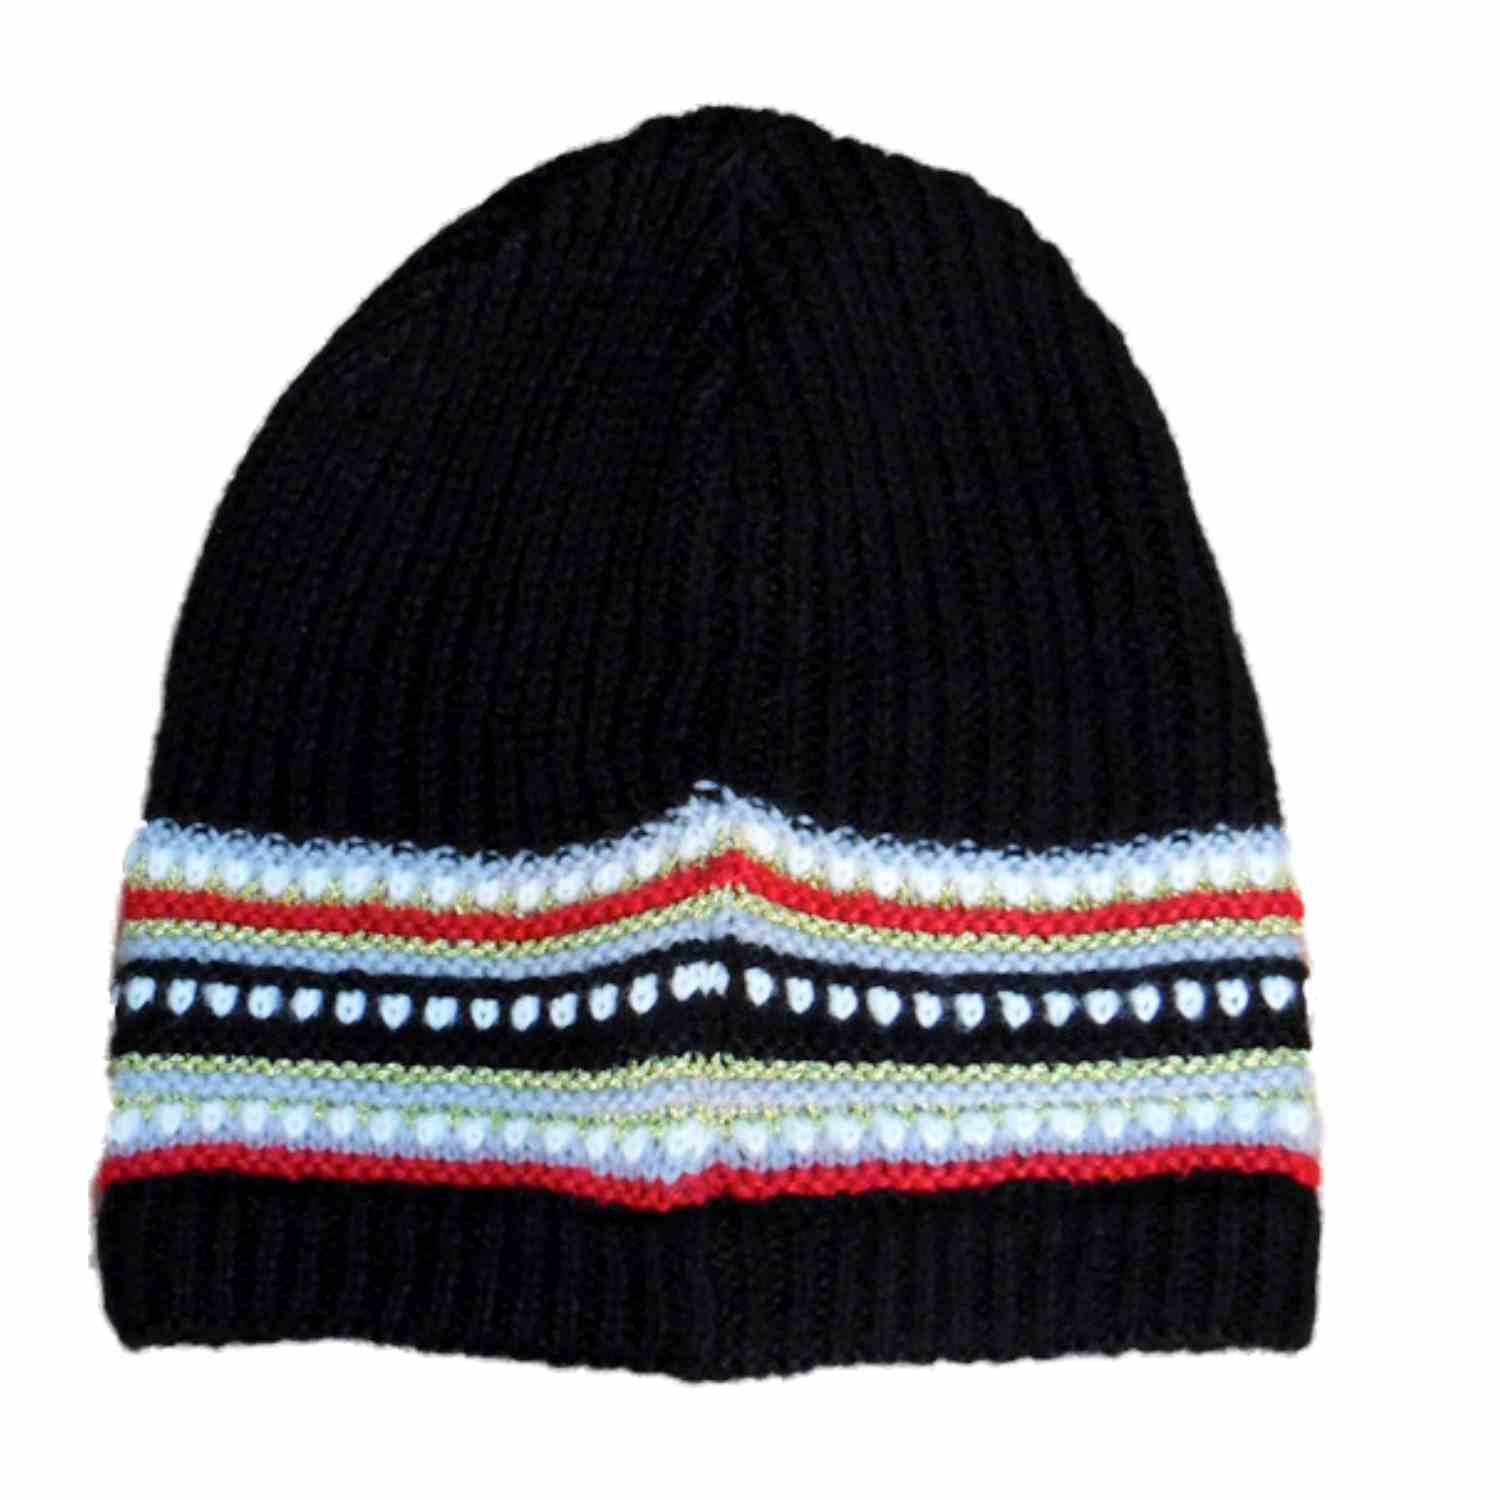 Fownes Womens Black & Red Stripe Knit Beanie Winter Stocking Cap Hat